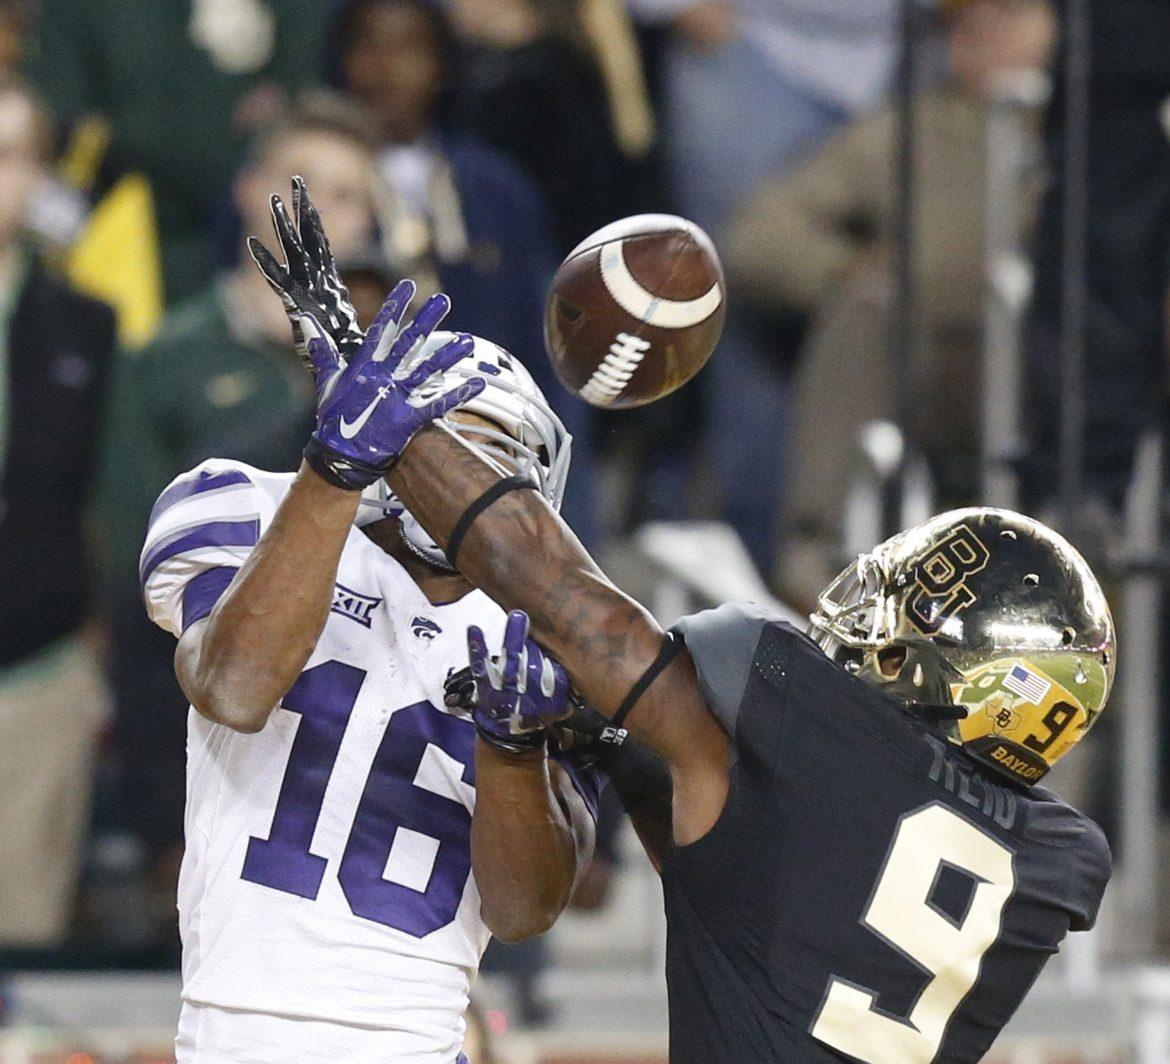 Baylor leads the two Big 12 teams snubbed in the BCS Playoff. File photo courtesy of Tribune News Service.